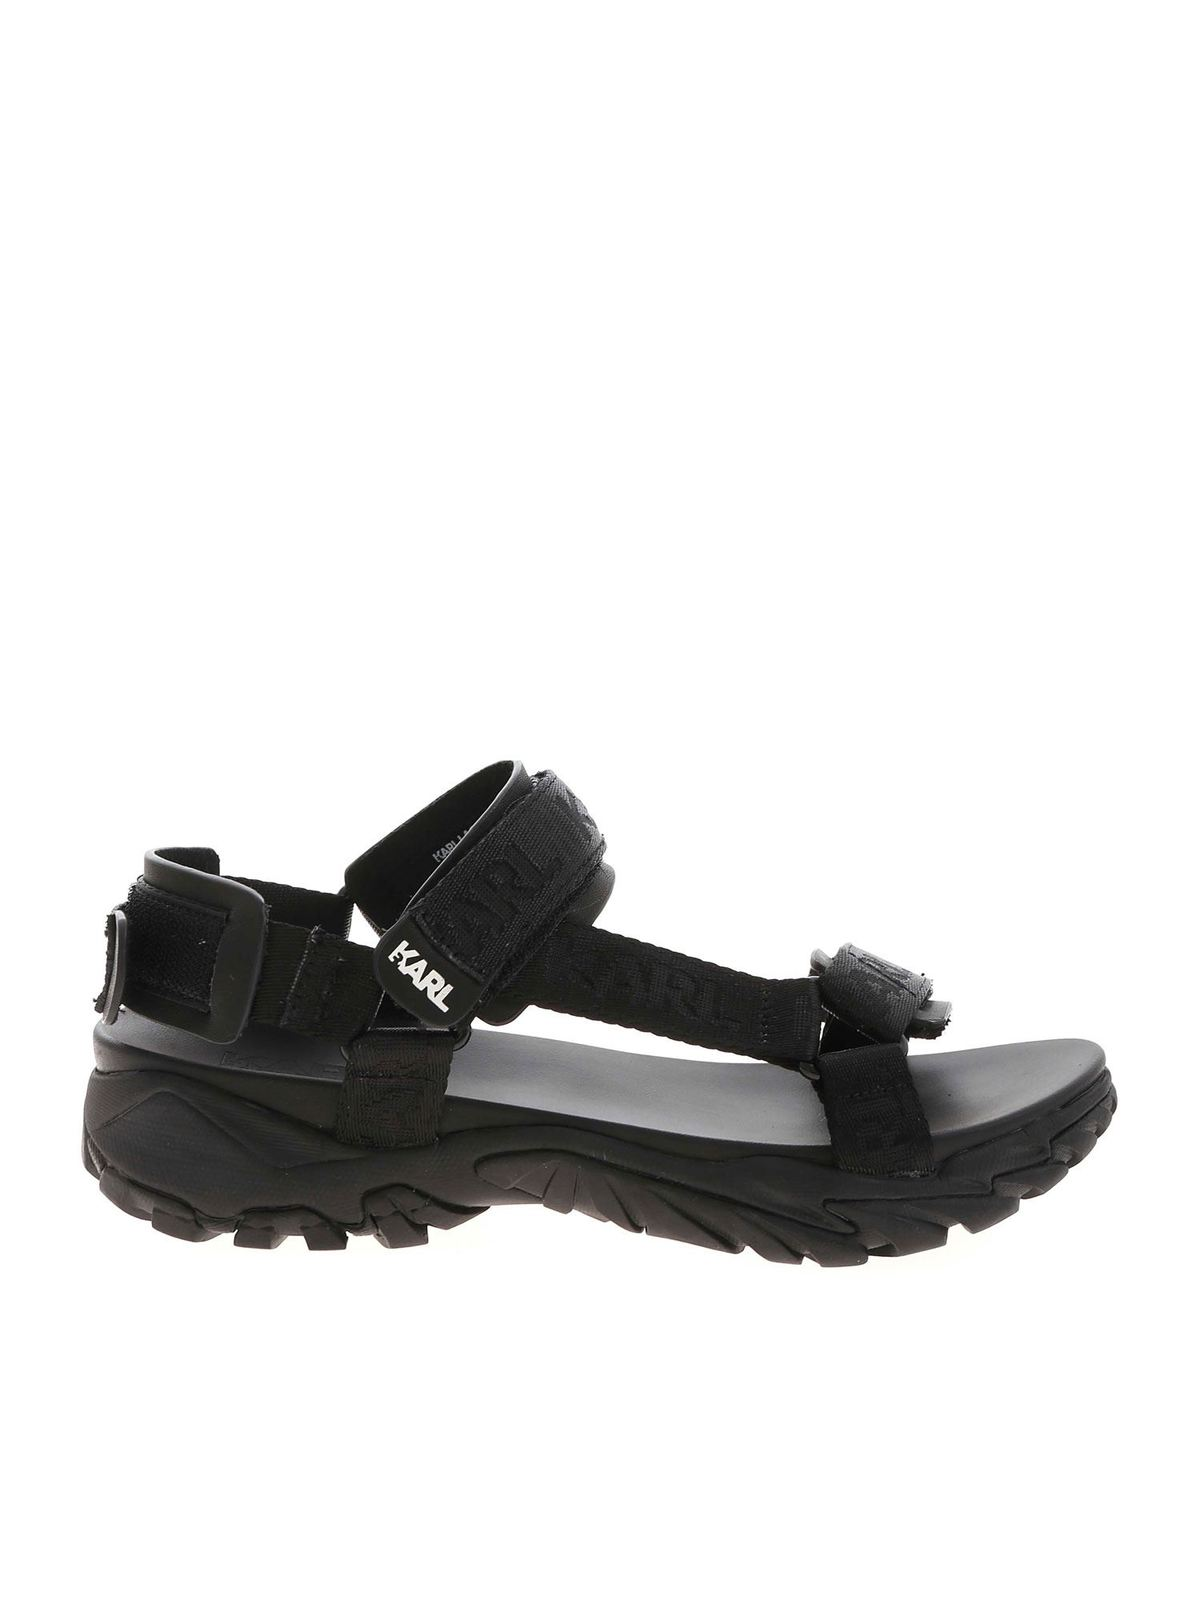 Karl Lagerfeld Leathers VOLT AKTIV SANDALS IN BLACK